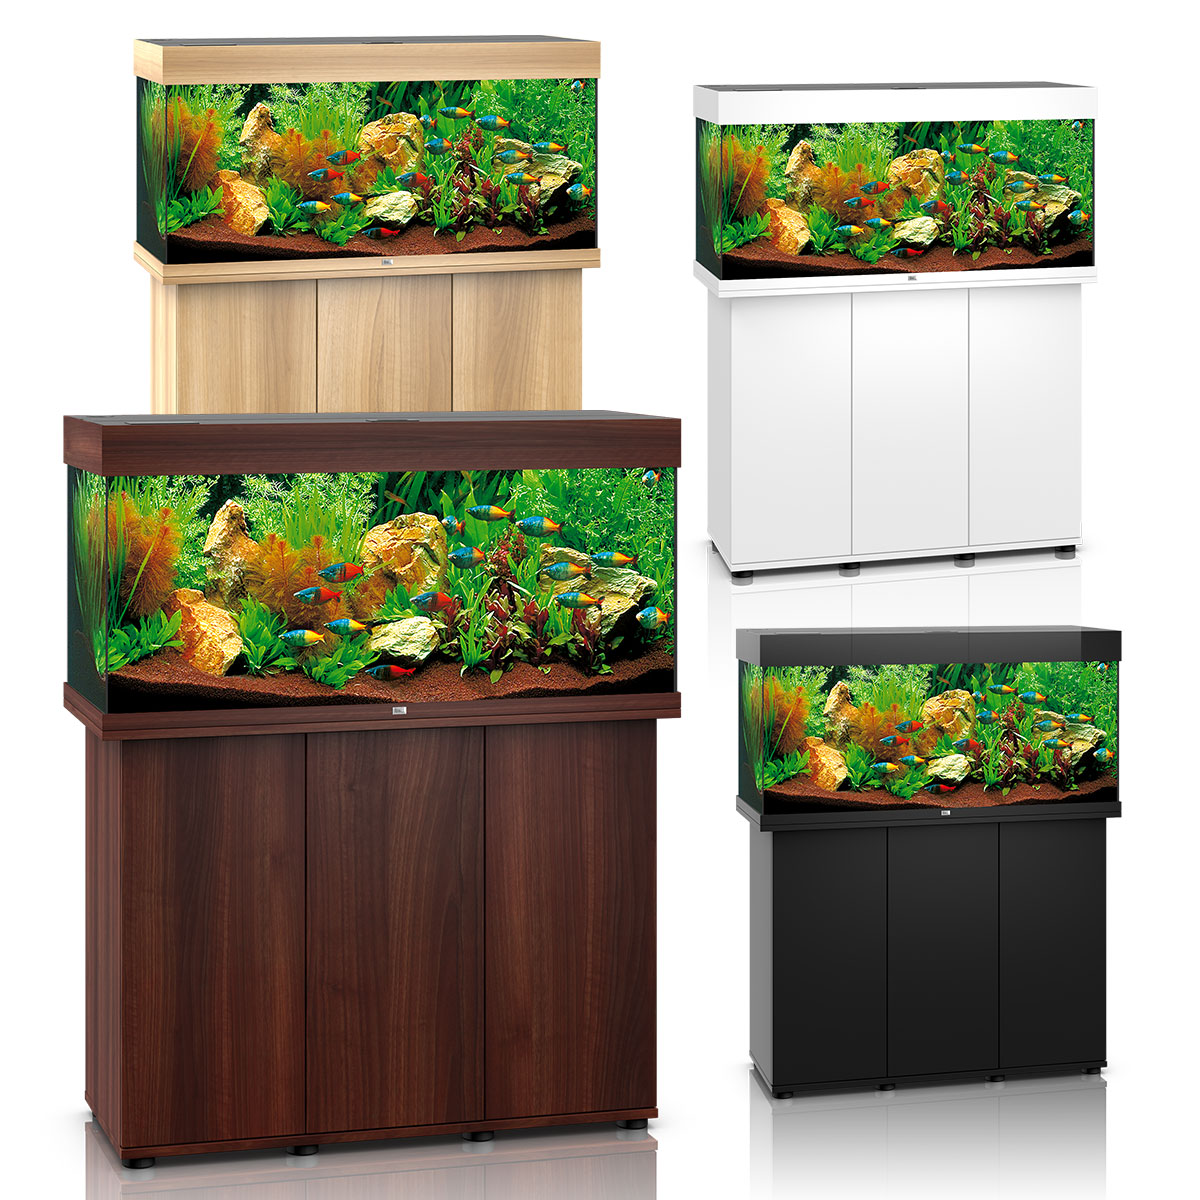 juwel rio 180 led komplett aquarium mit unterschrank sbx. Black Bedroom Furniture Sets. Home Design Ideas